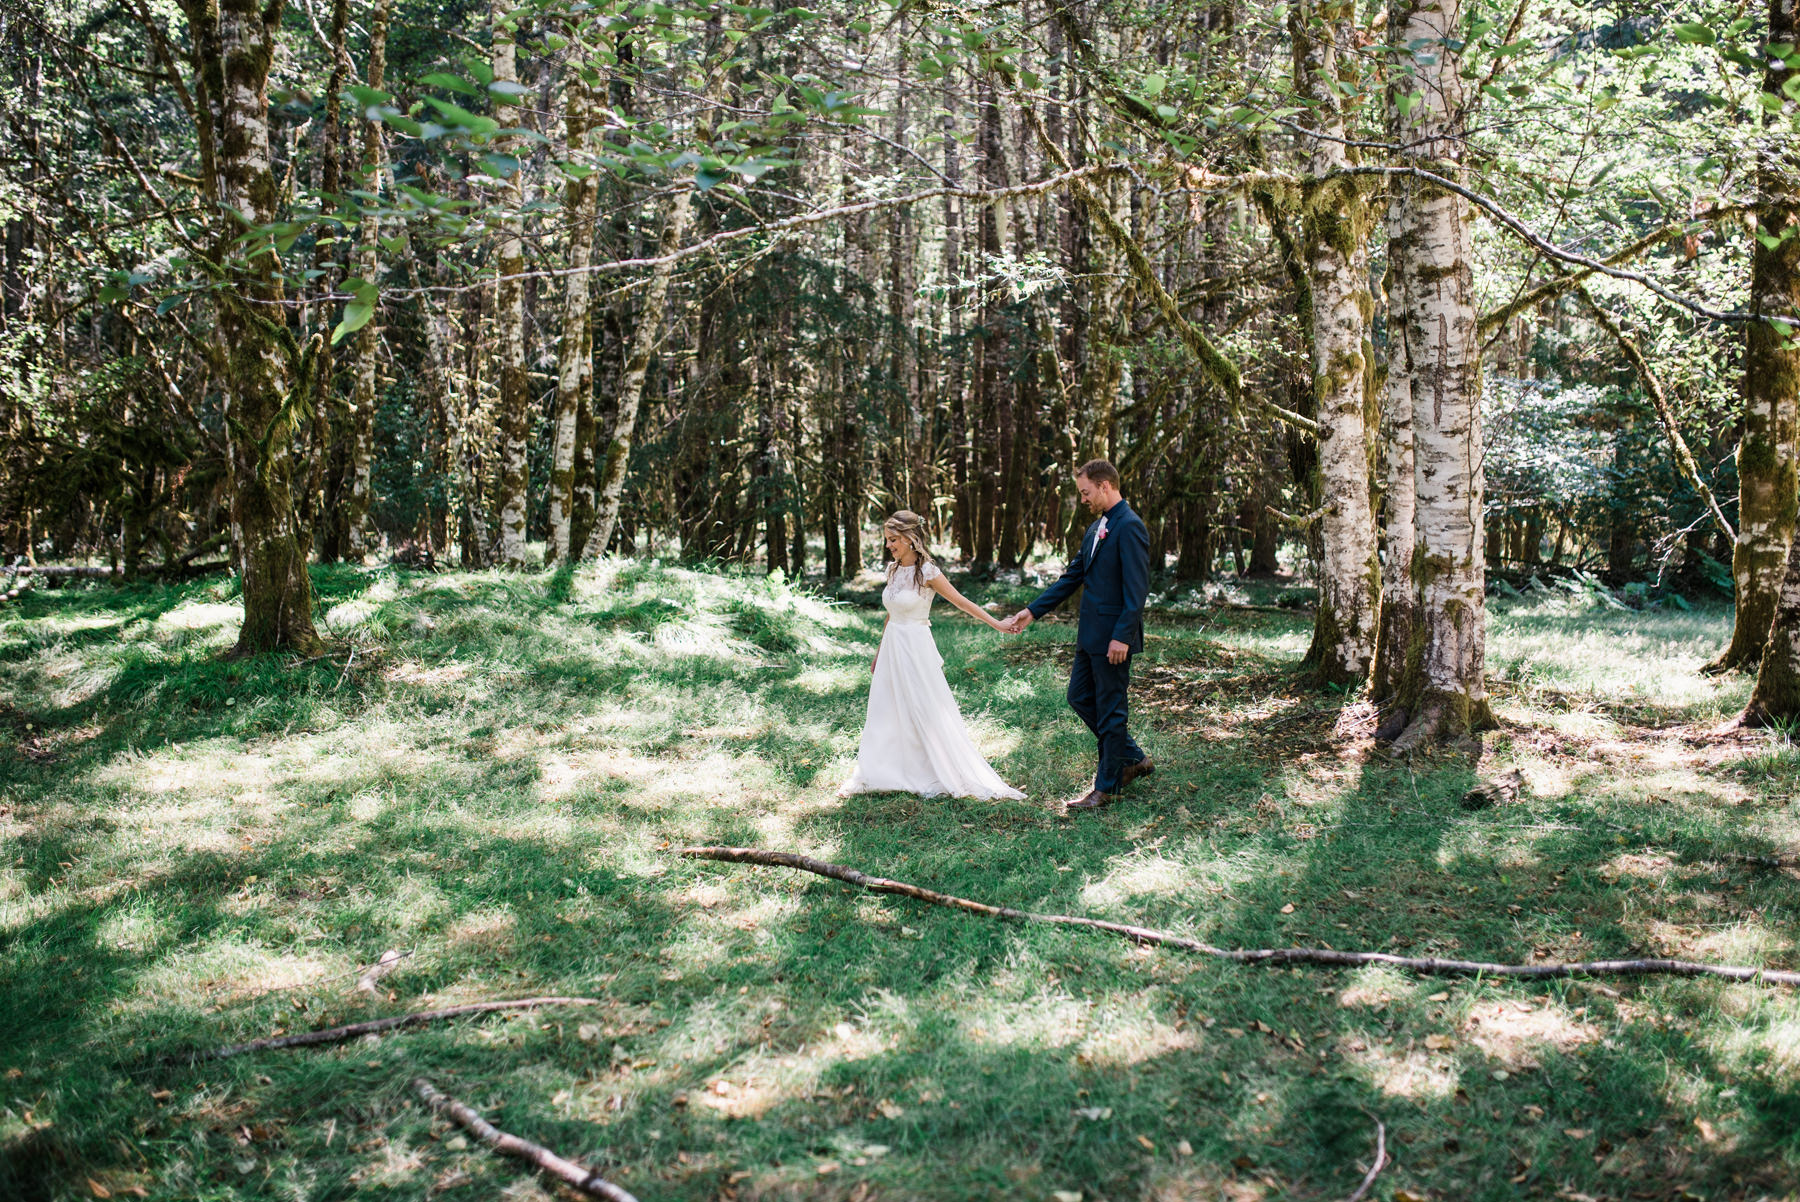 165-fine-art-film-wedding-portraits-at-nature-bride-near-the-lake-crescent-lodge.jpg